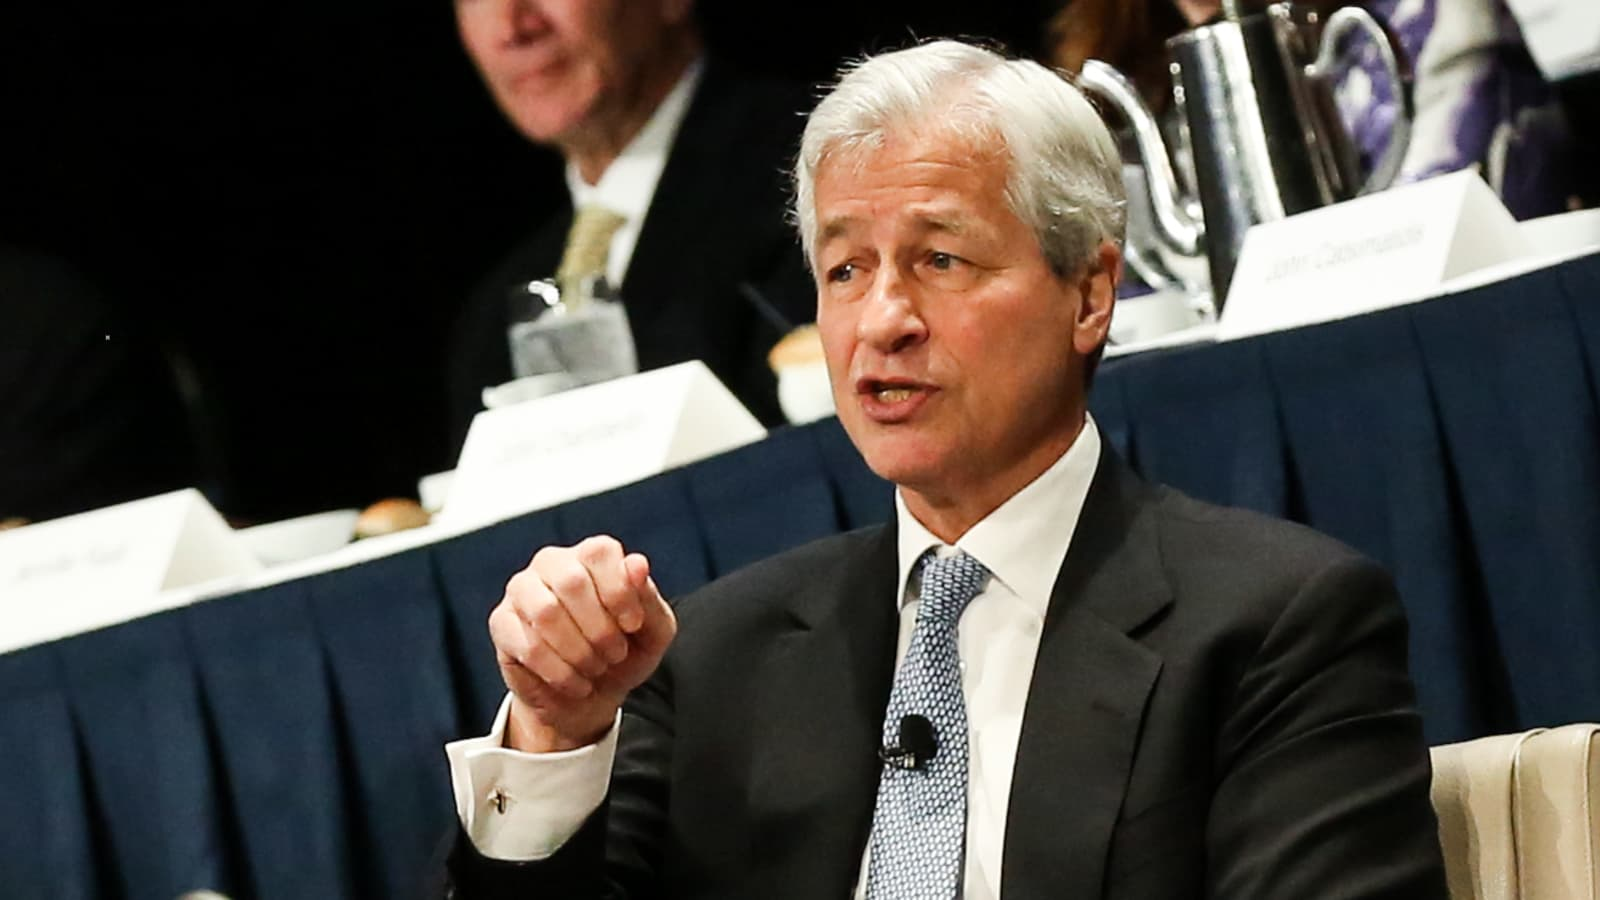 jp morgan invest in cryptocurrency